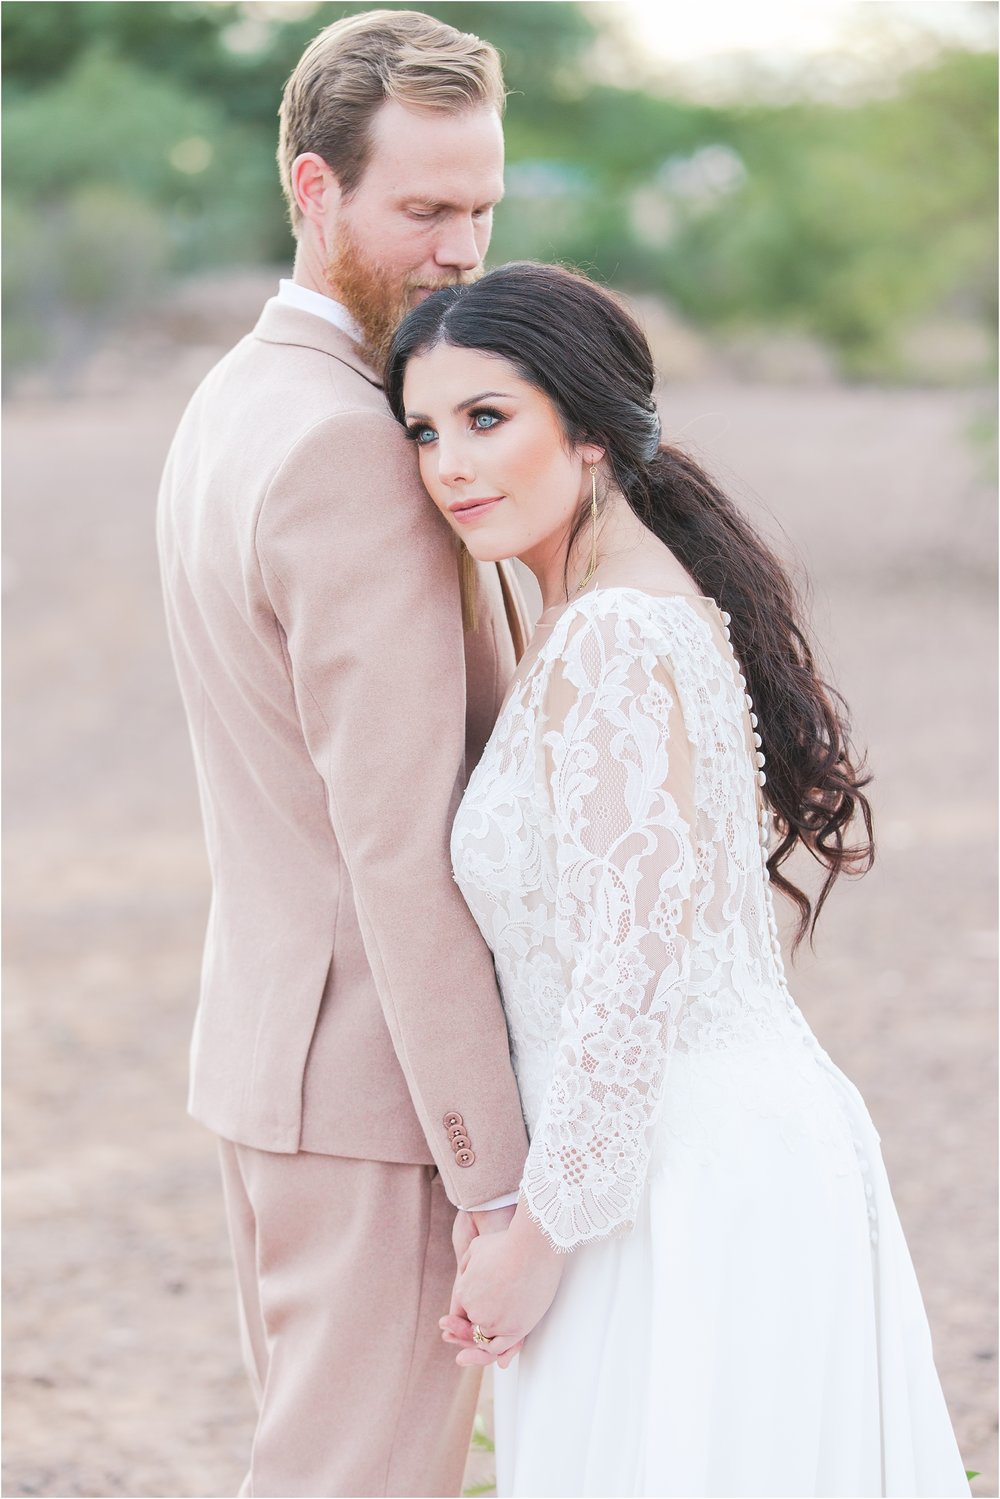 intimate-and-romantic-desert-wedding-photos-at-phoenix-marriott-tempe-at-the-buttes-in-tempe-arizona-by-courtney-carolyn-photography_0034.jpg